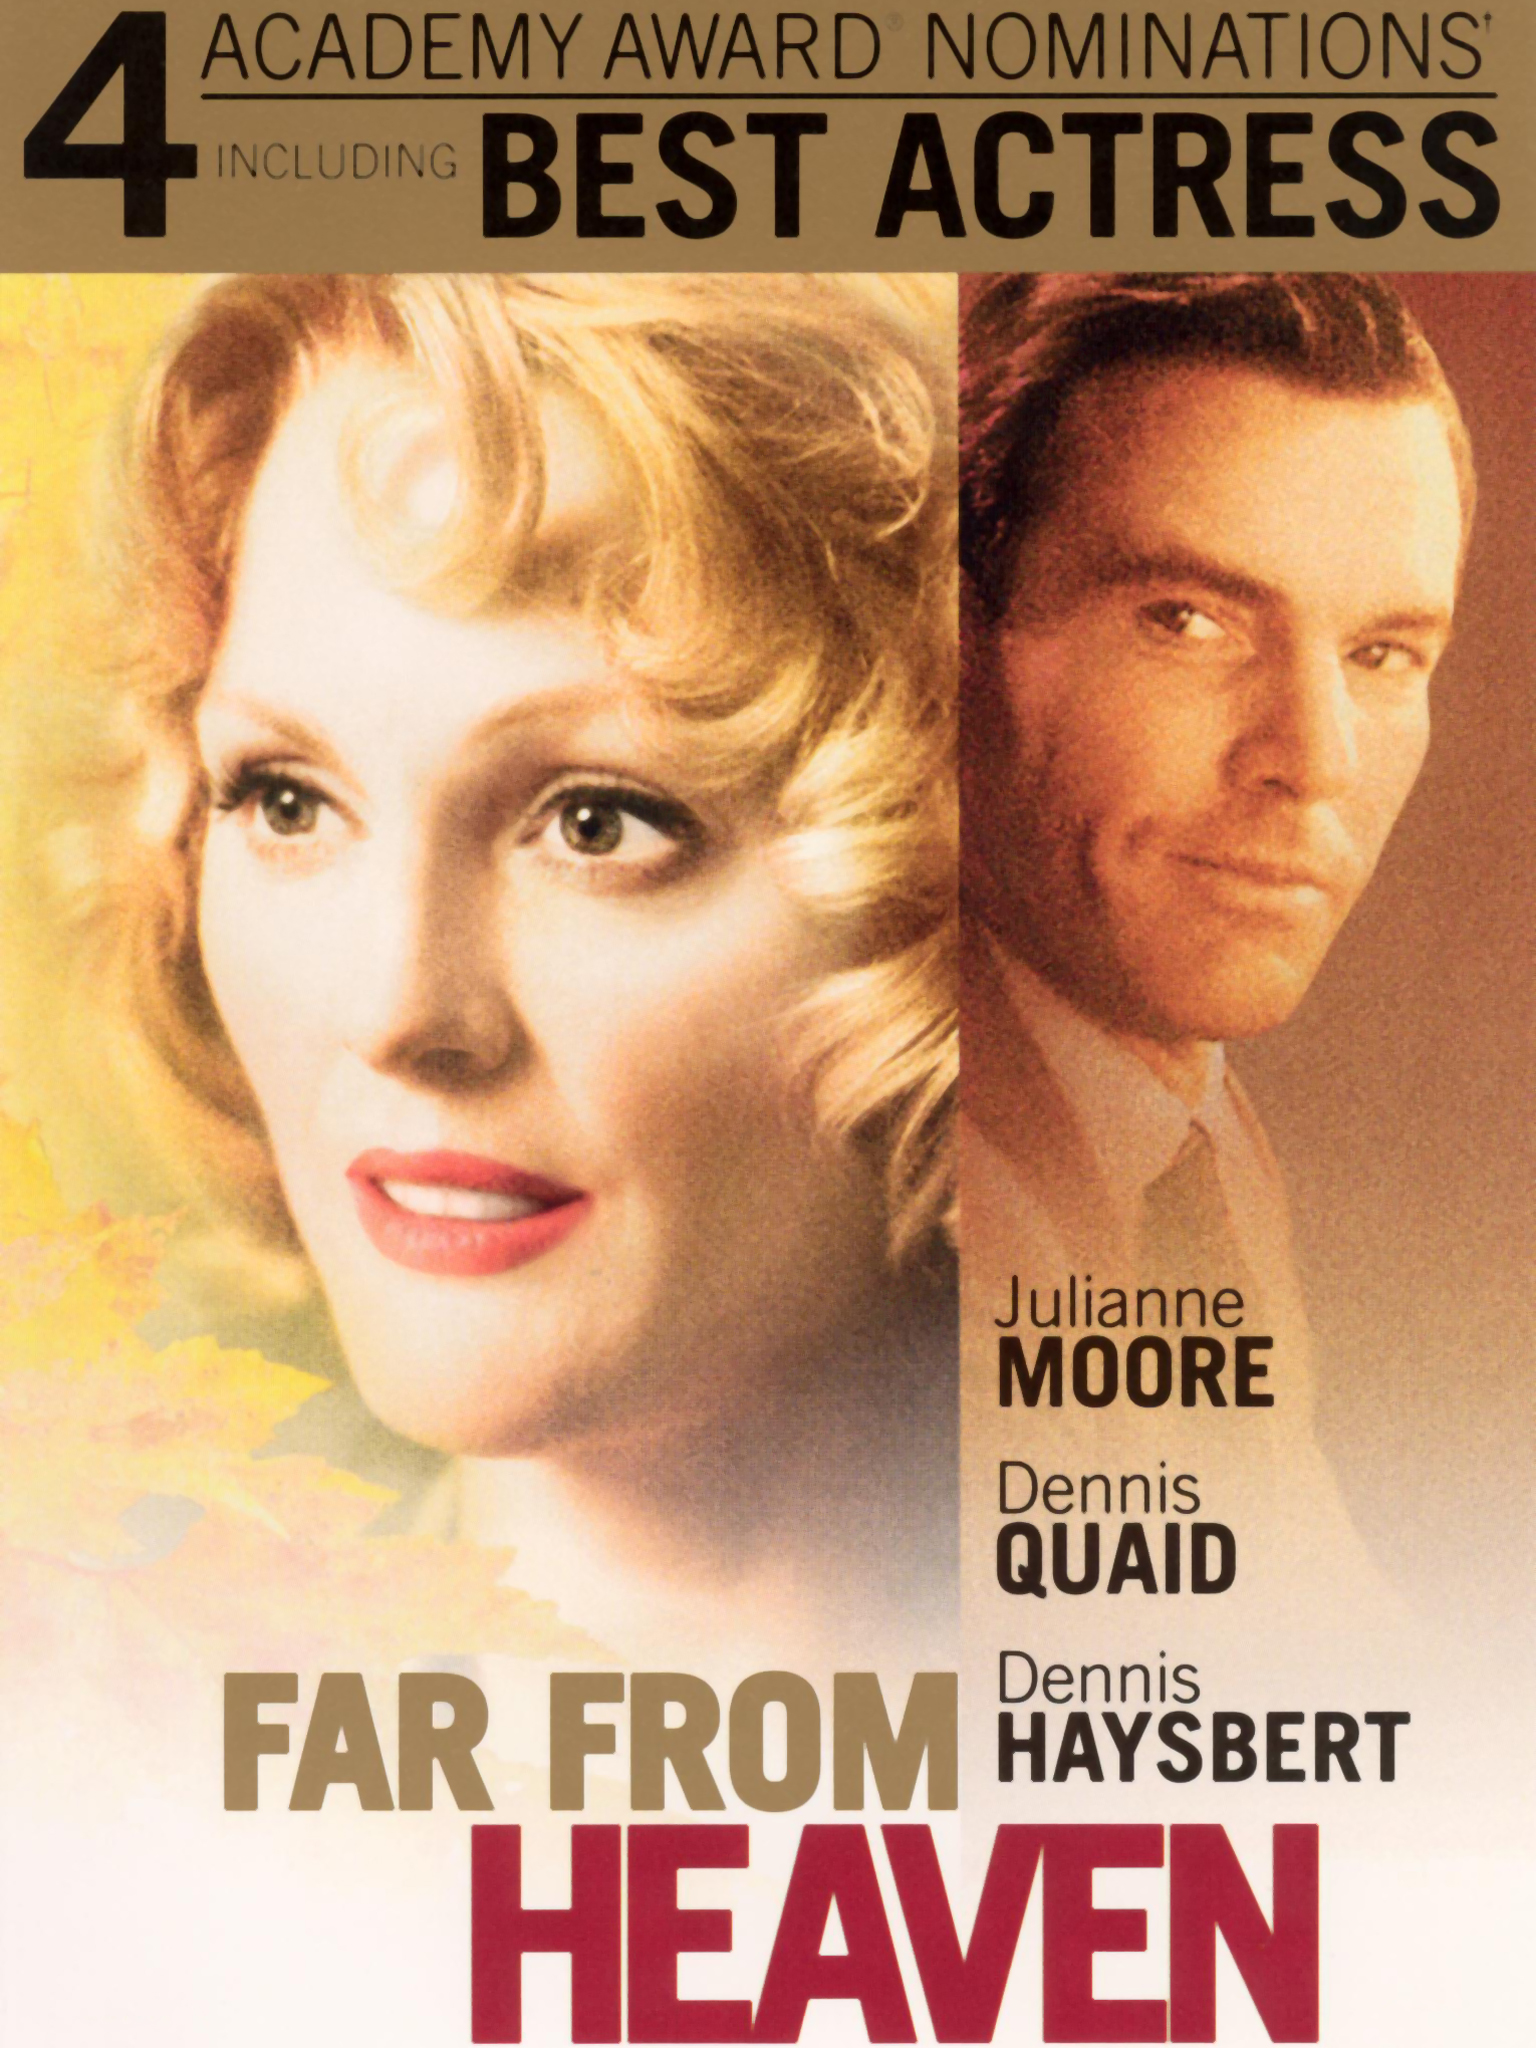 far from heaven film review Sensitive, mature melodrama about sexuality in the 1950s read common sense media's far from heaven review, age rating, and parents guide.